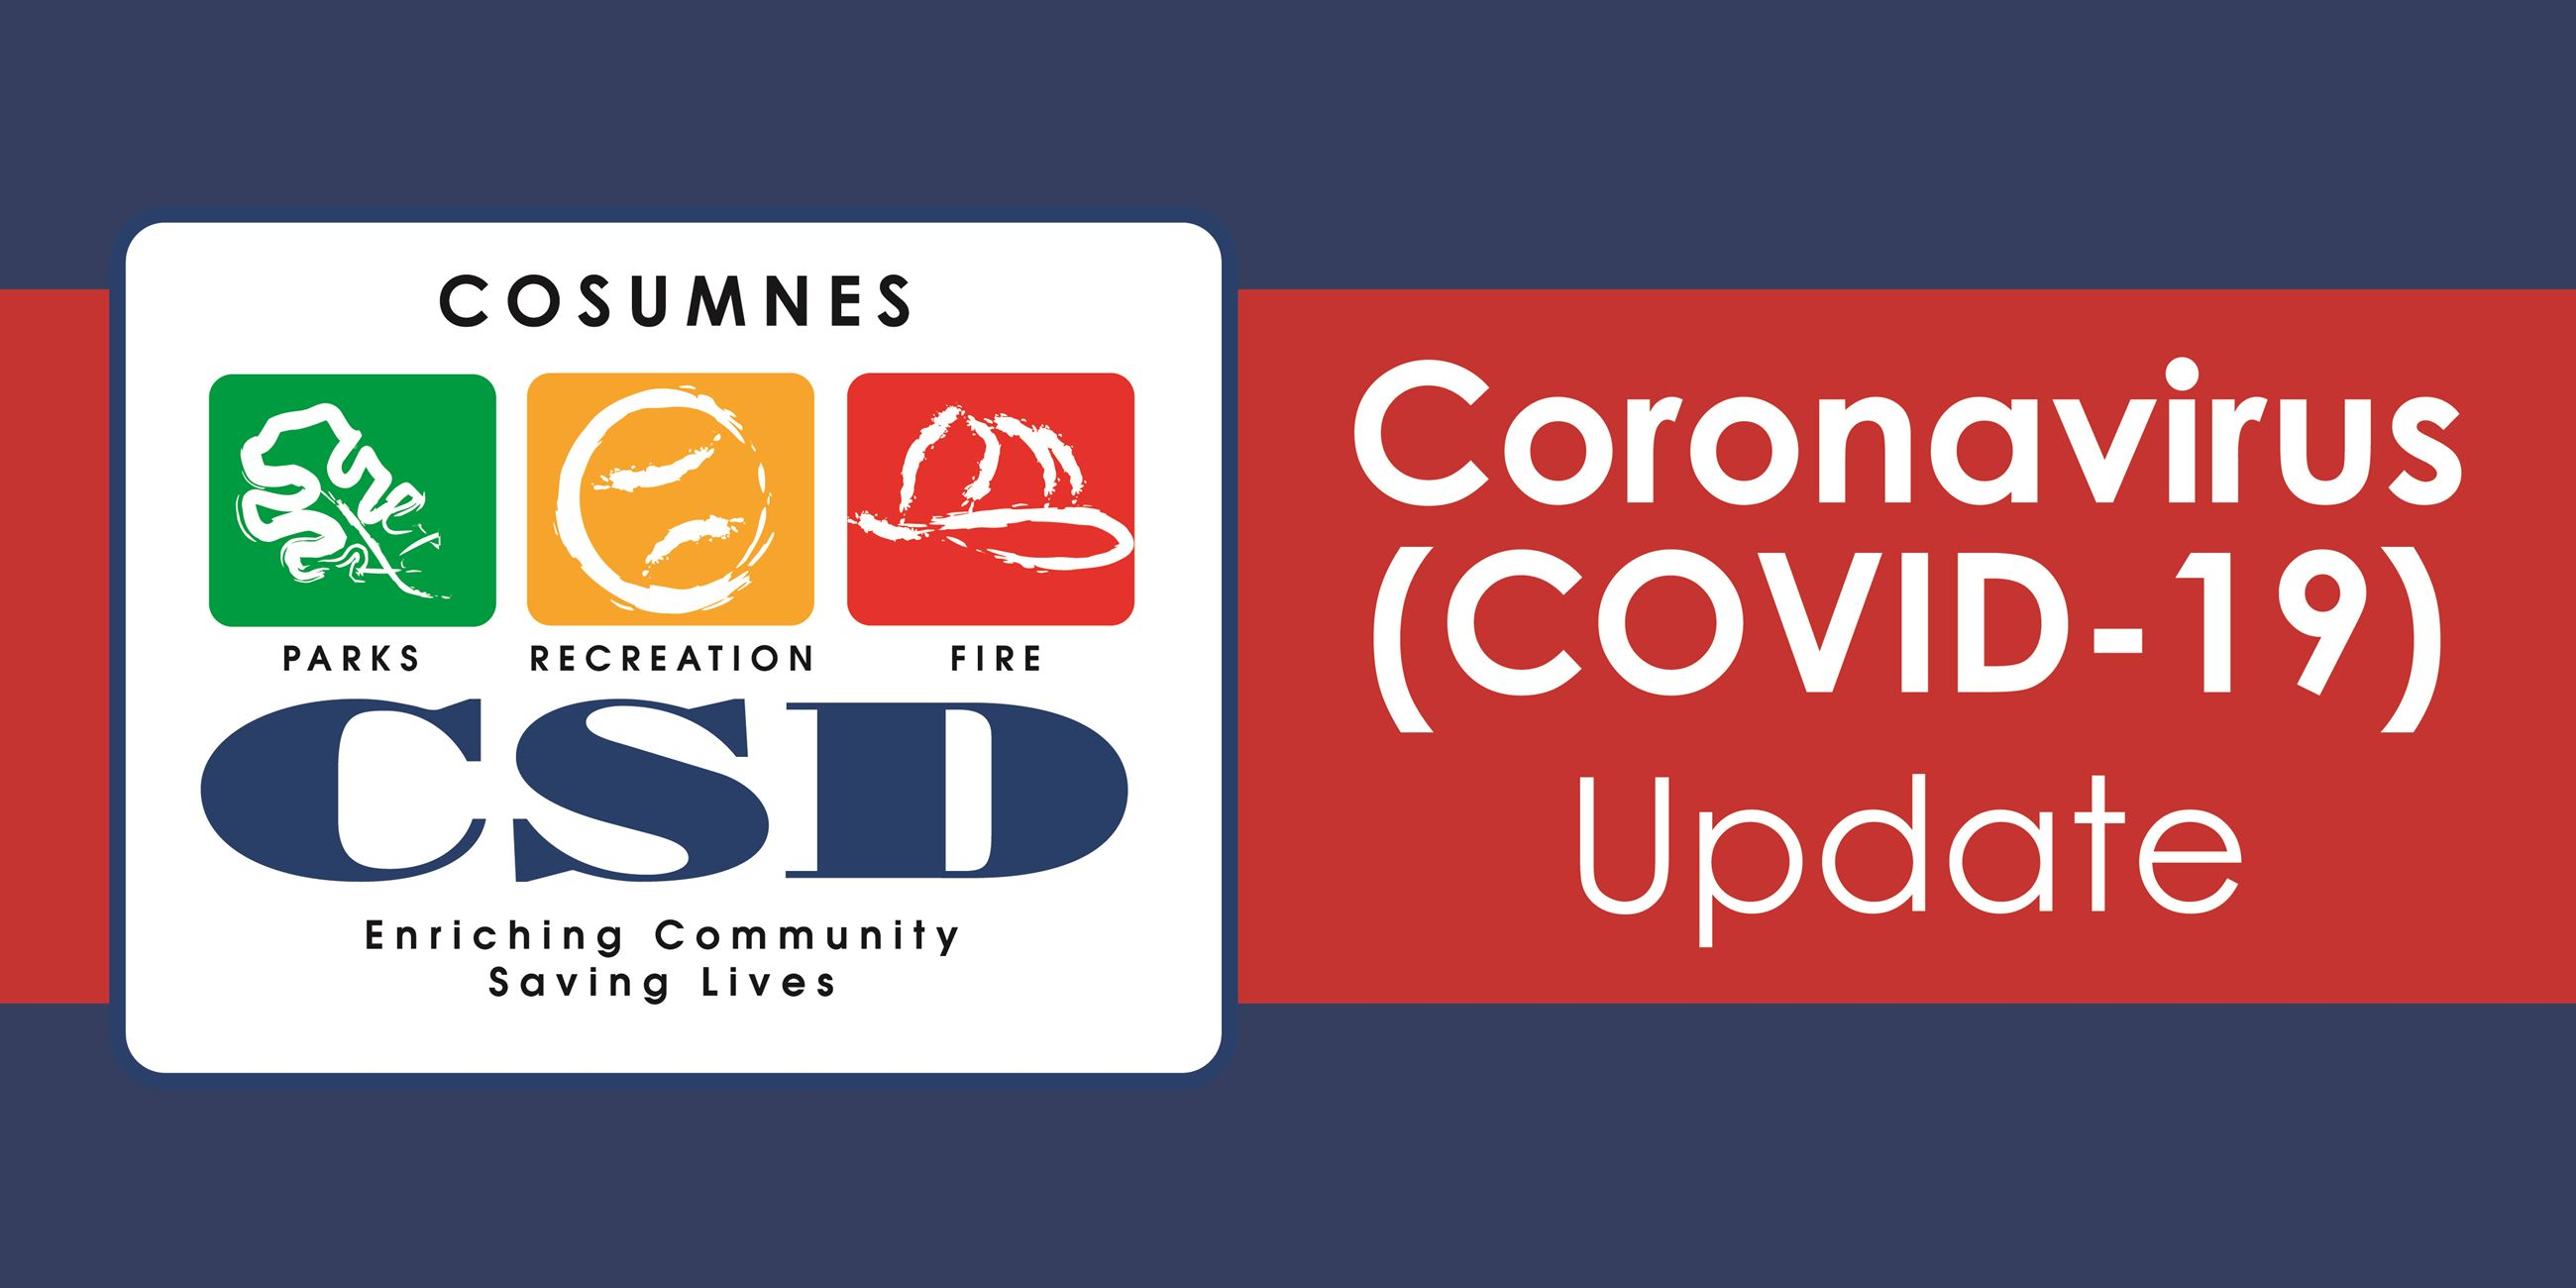 Coronavirus Update from Cosumnes CSD